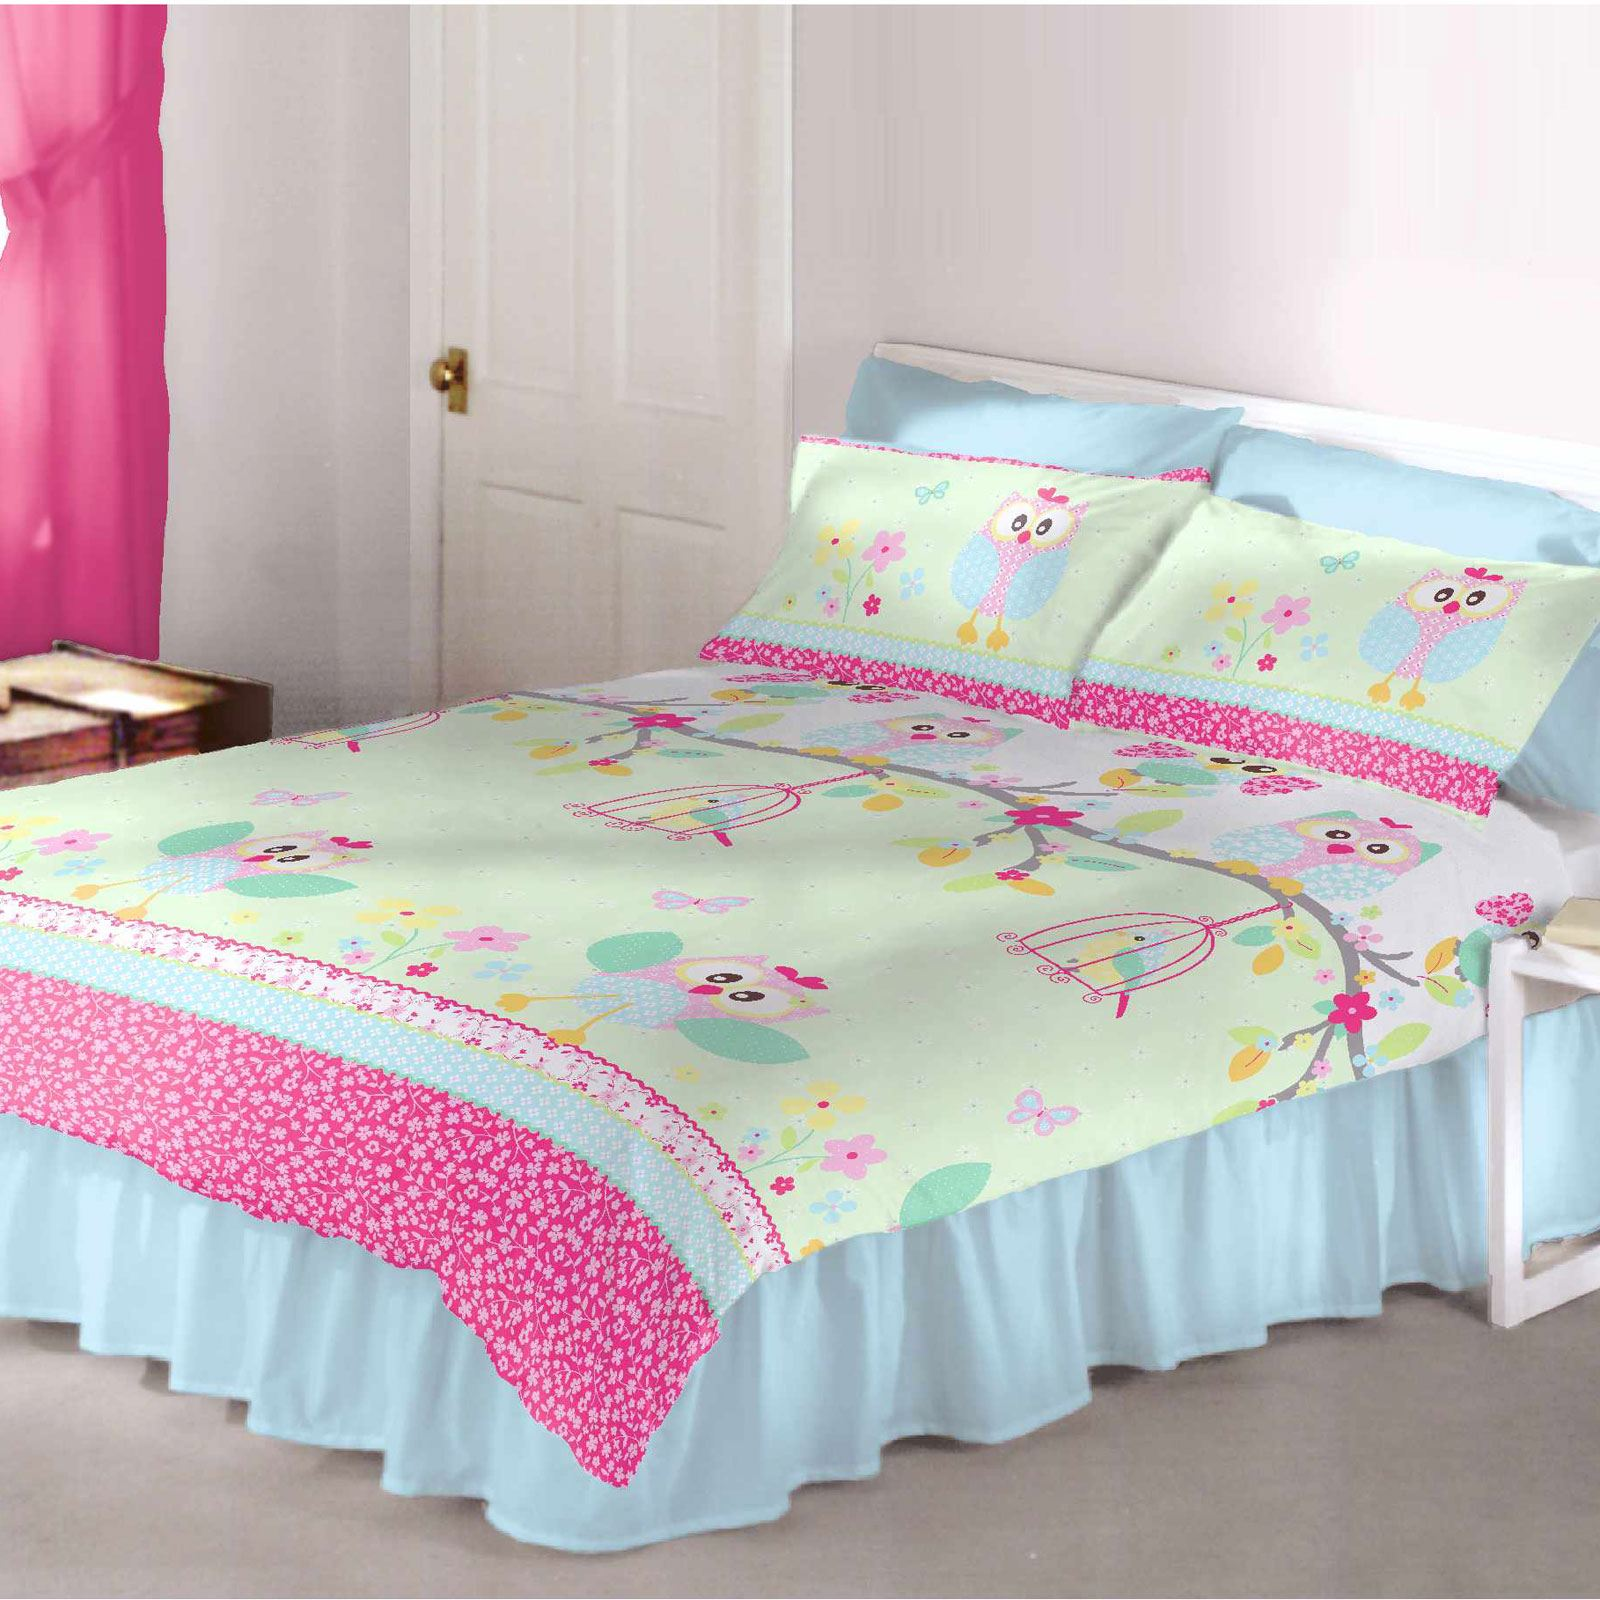 Double Doona Covers Kids Double Bedding Childrens Double Doona Cover Sets